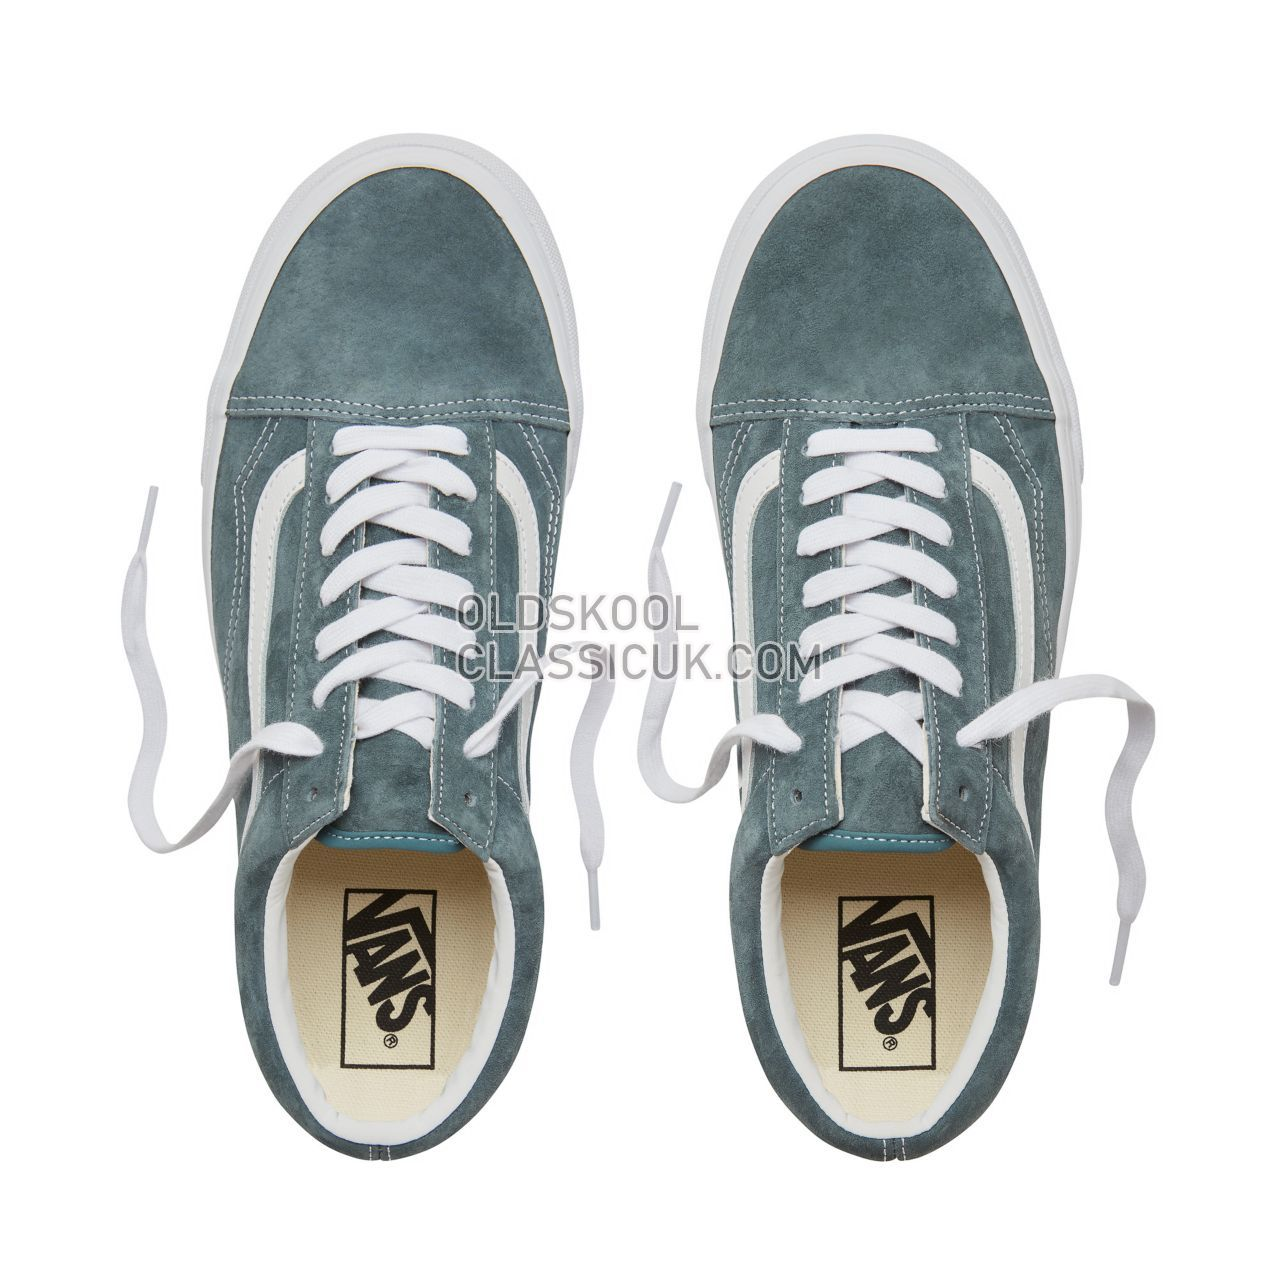 Vans Suede Old Skool Sneakers Mens Womens Unisex (Pig Suede) Stormy Weather/True White VA38G1U5N Shoes